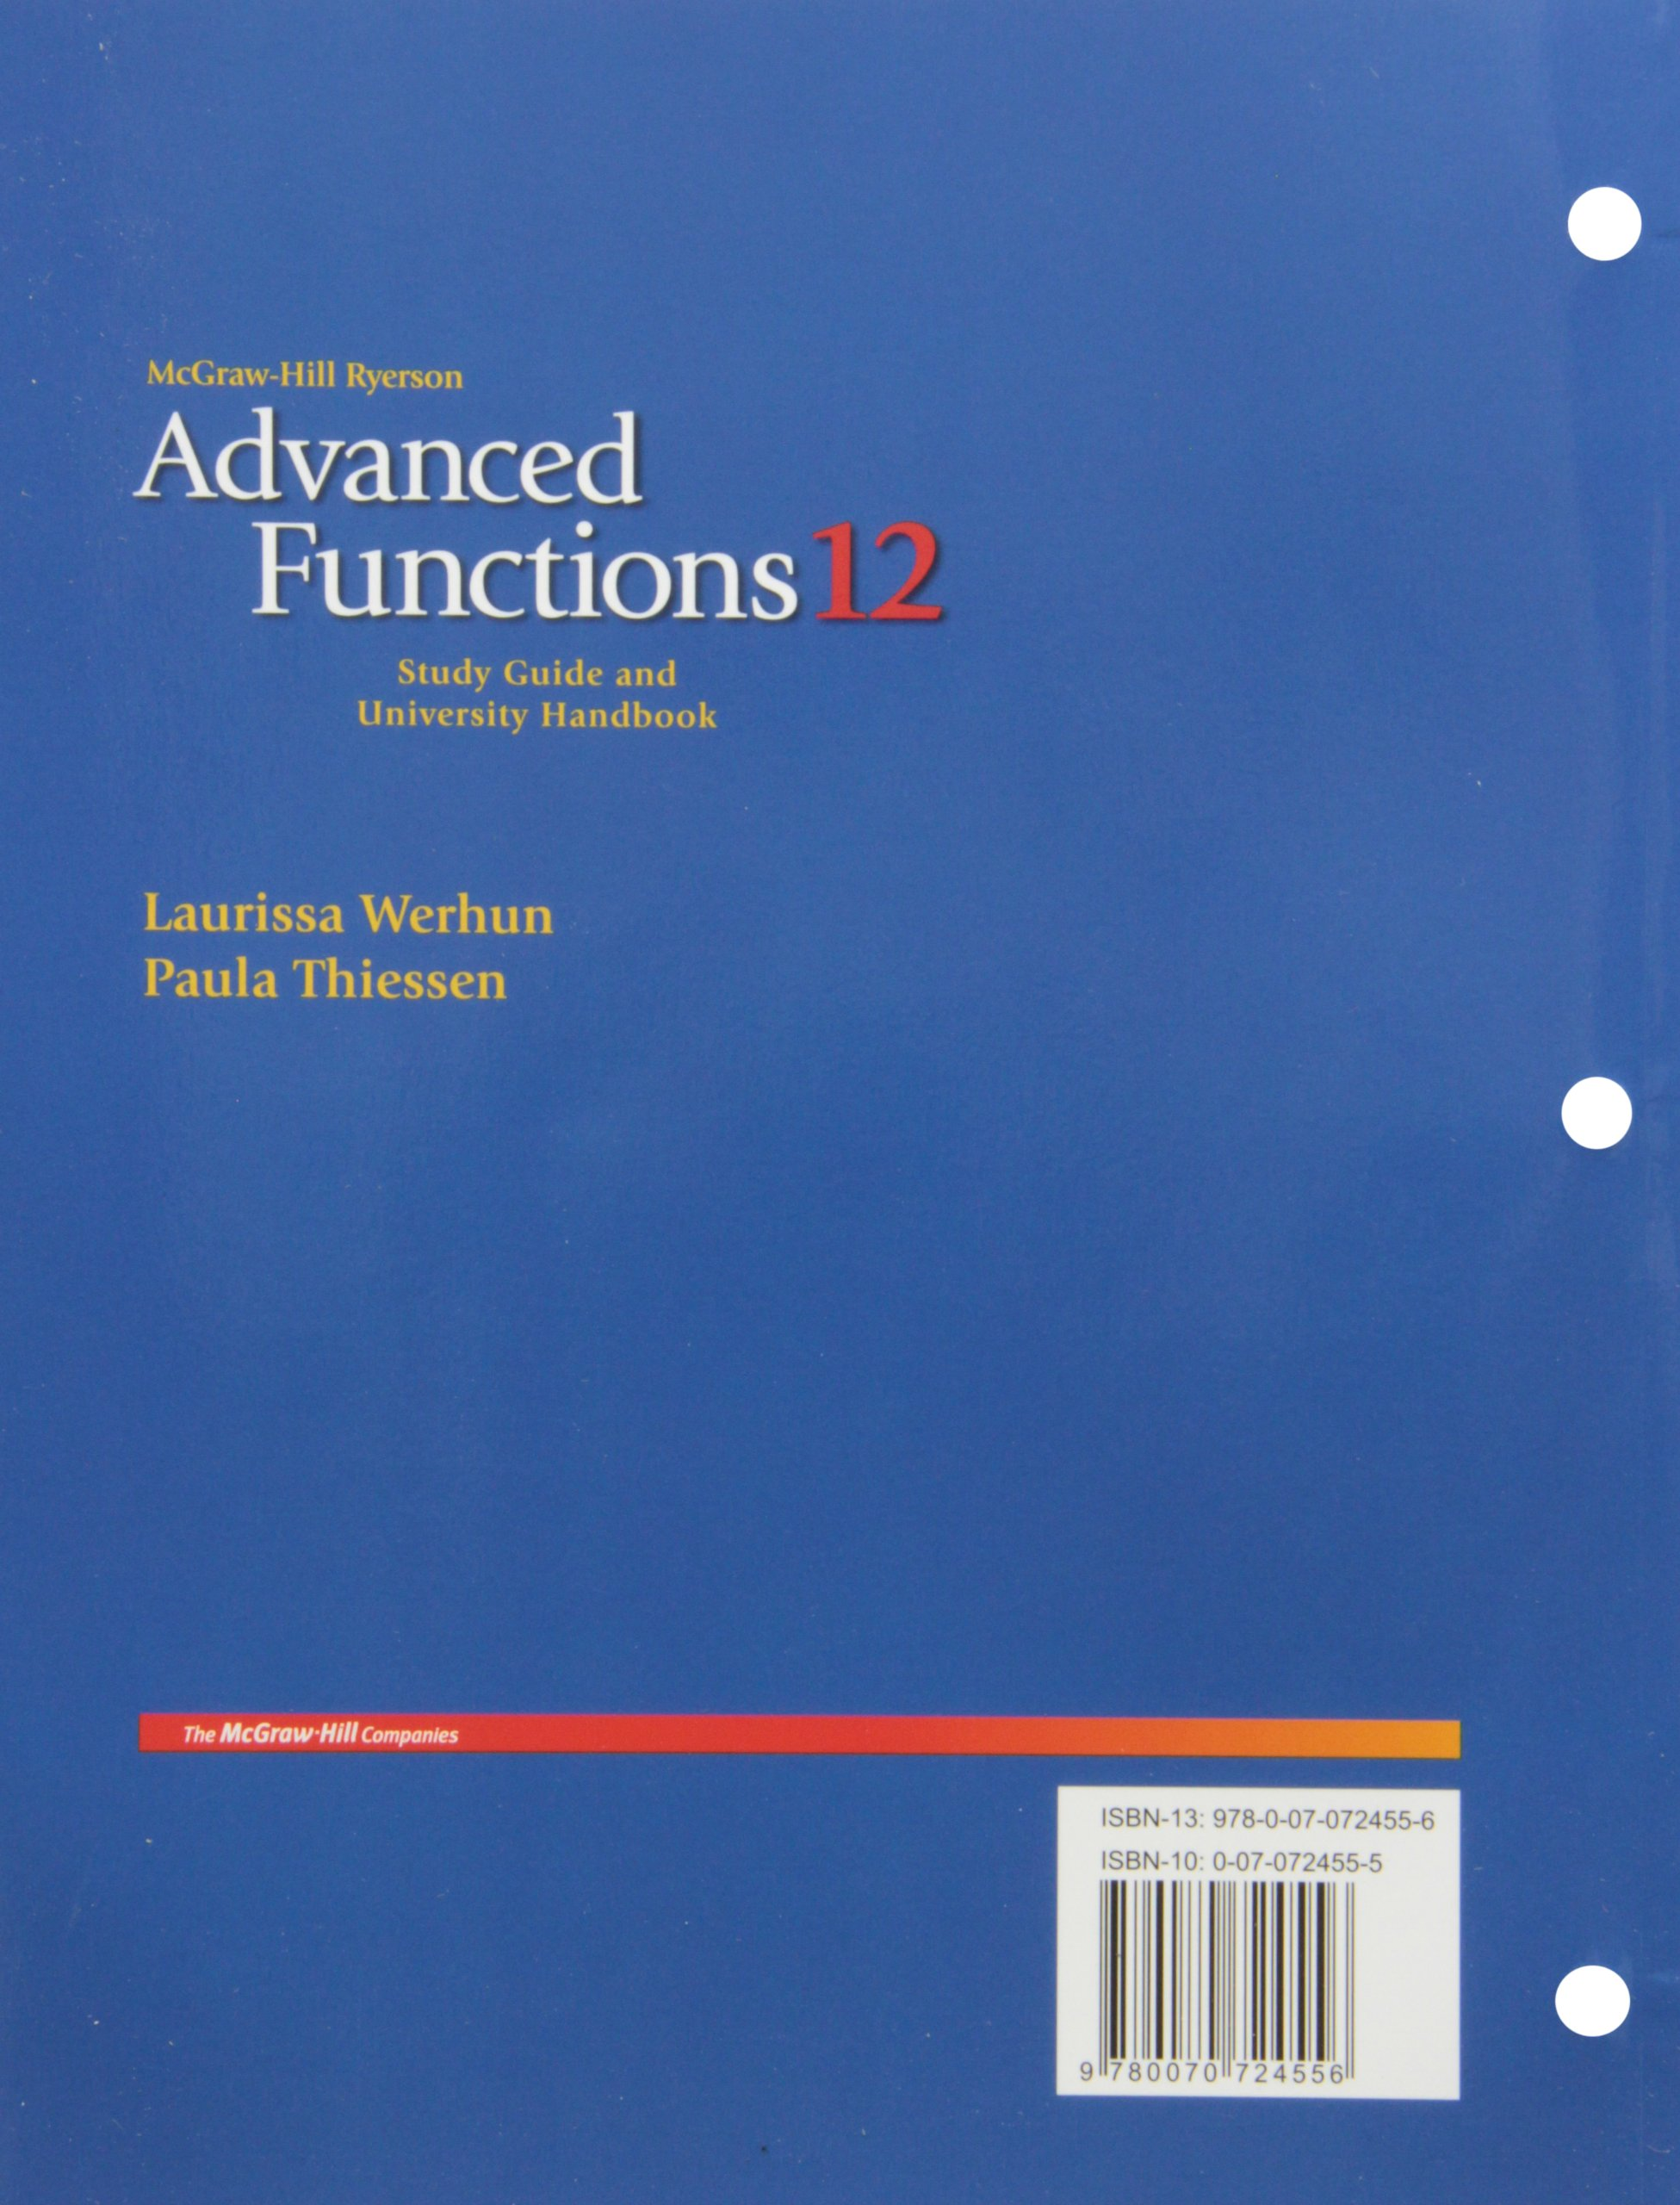 Advanced Functions 12 Study Guide and University (Laurissa werhun):  unknown: 9780070724556: Amazon.com: Books